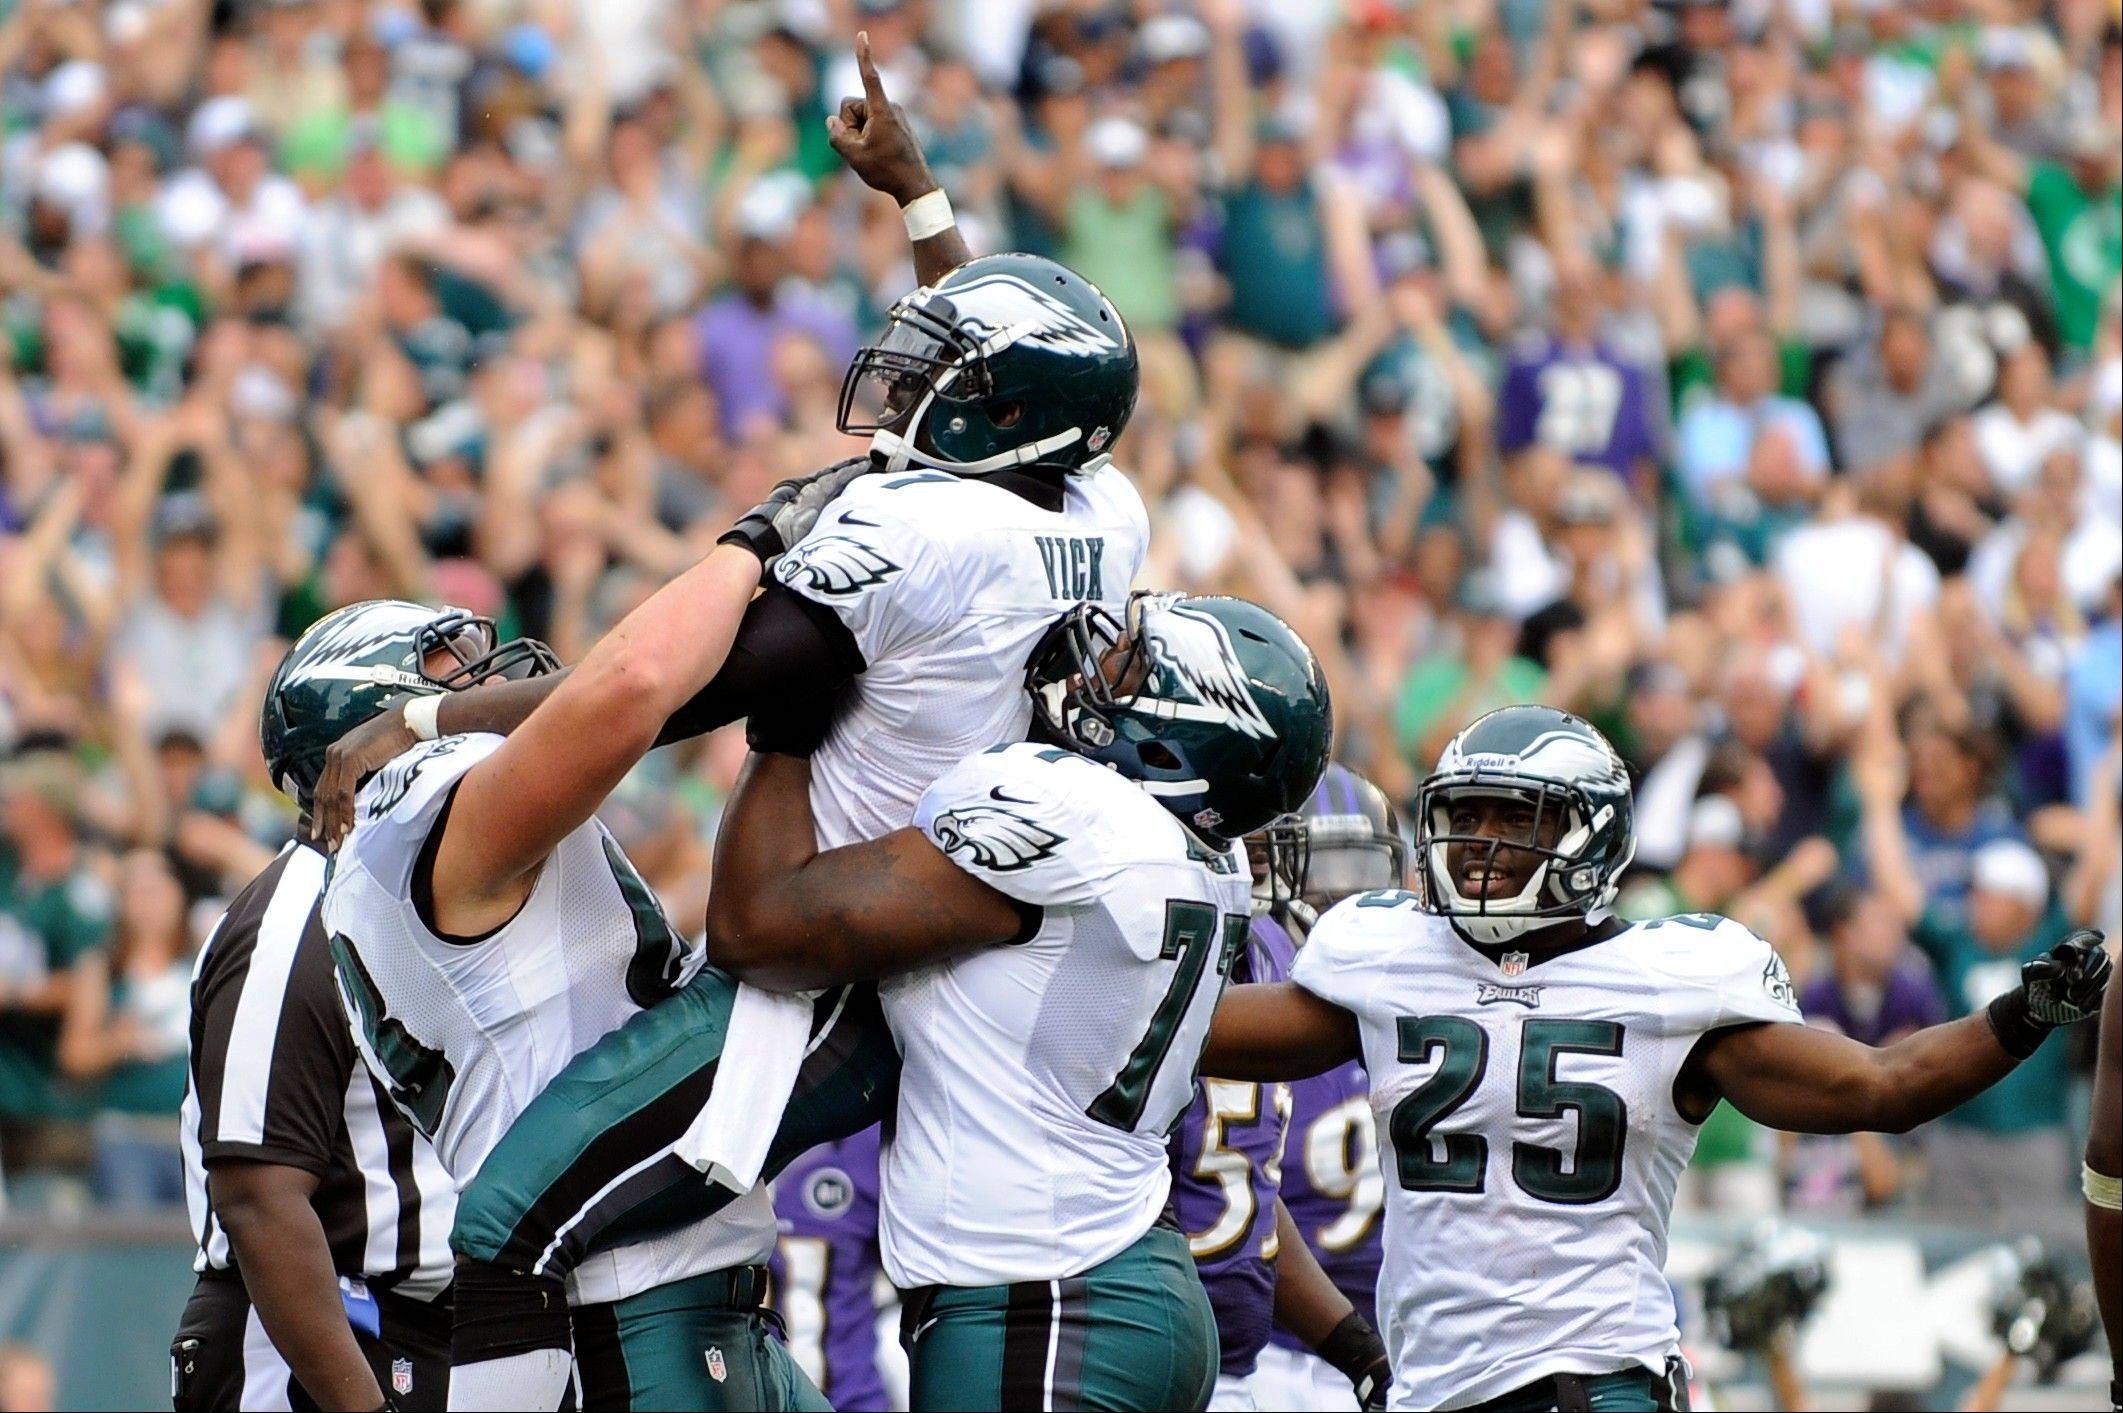 From left to right, Philadelphia Eagles� Danny Watkins, Michael Vick and Demetress Bell and LeSean McCoy celebrate after Vick�s rushing touchdown in the second half against the Baltimore Ravens.